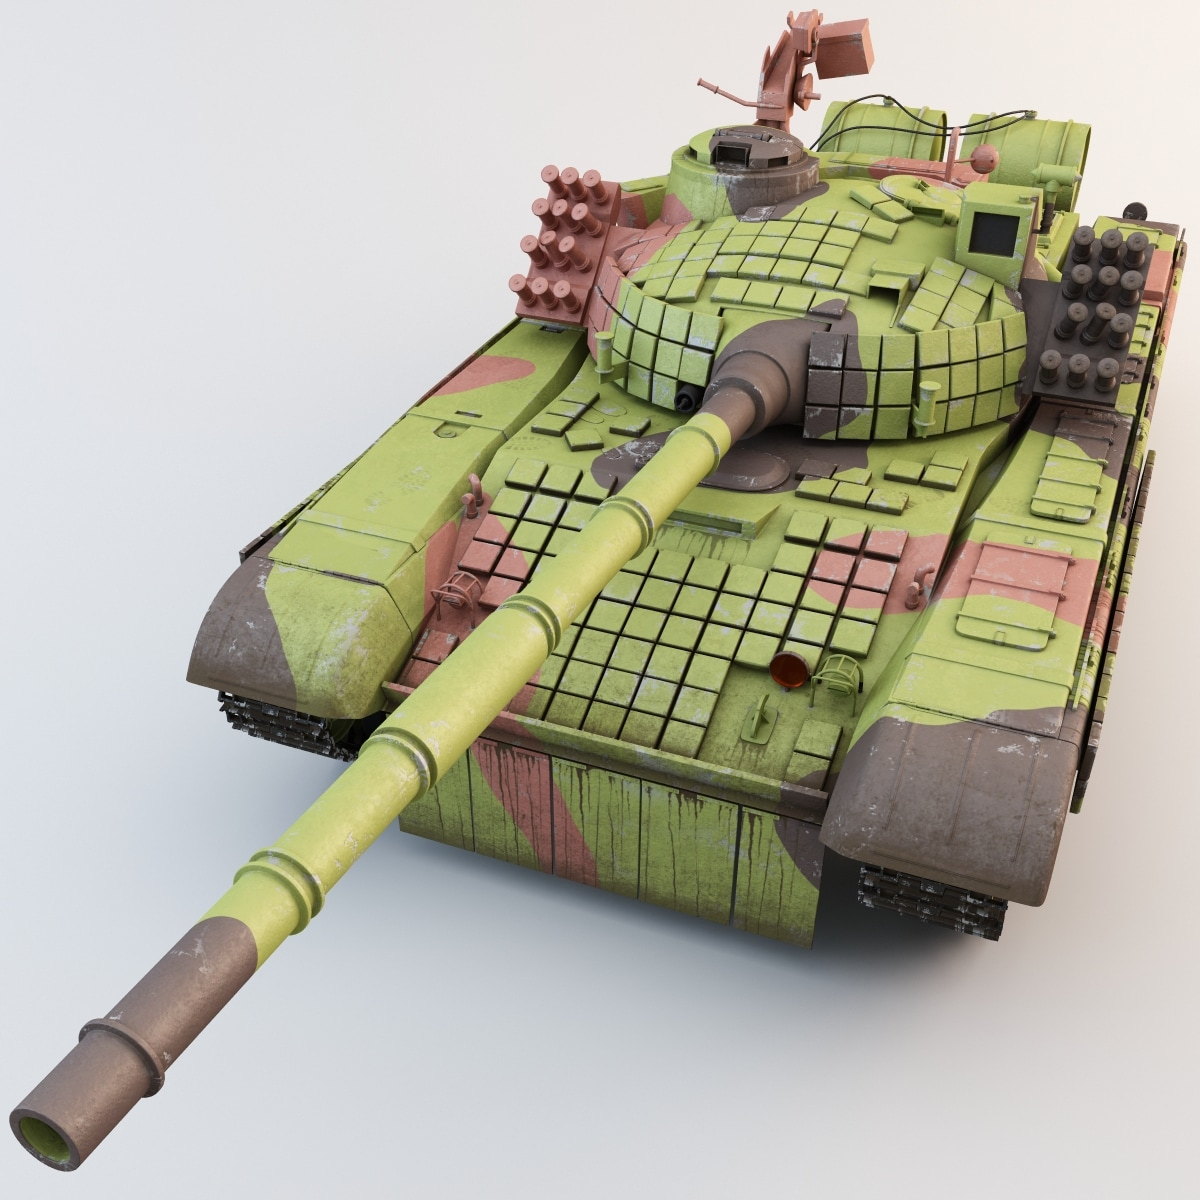 Polish_Main_Battle_Tank_PT-91_Twardy_005.jpg